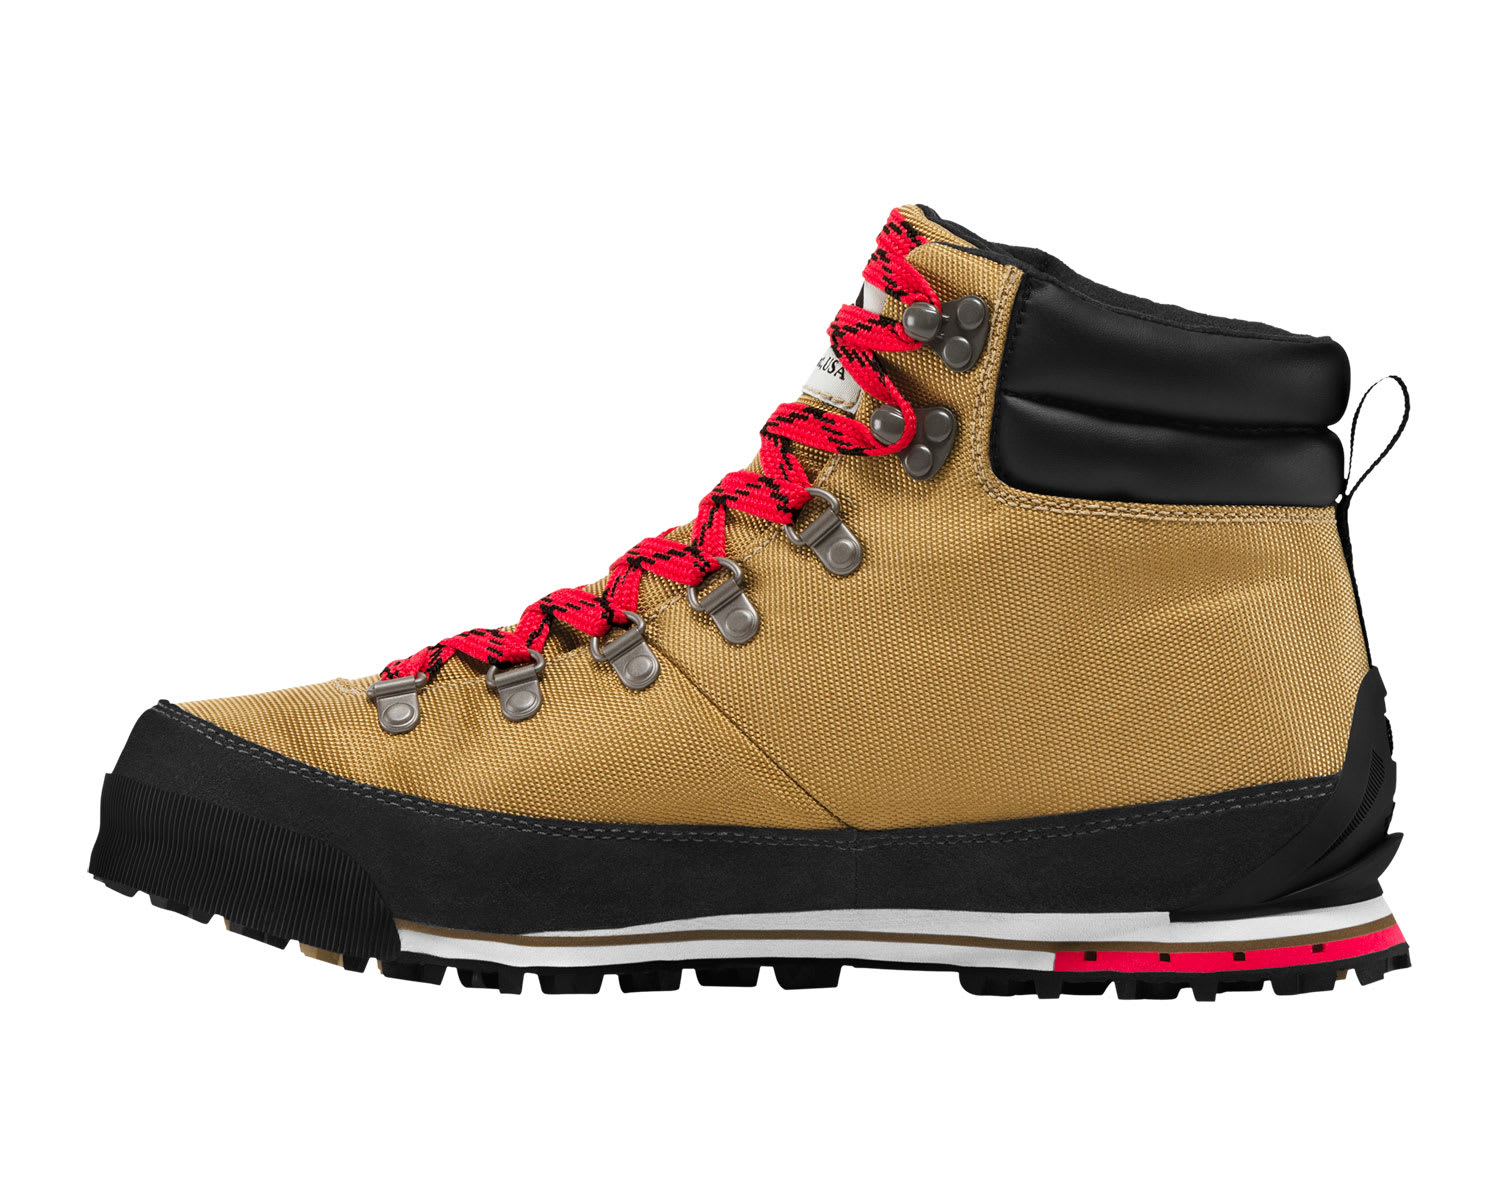 The North Face Back To Berkeley Hiking Boots